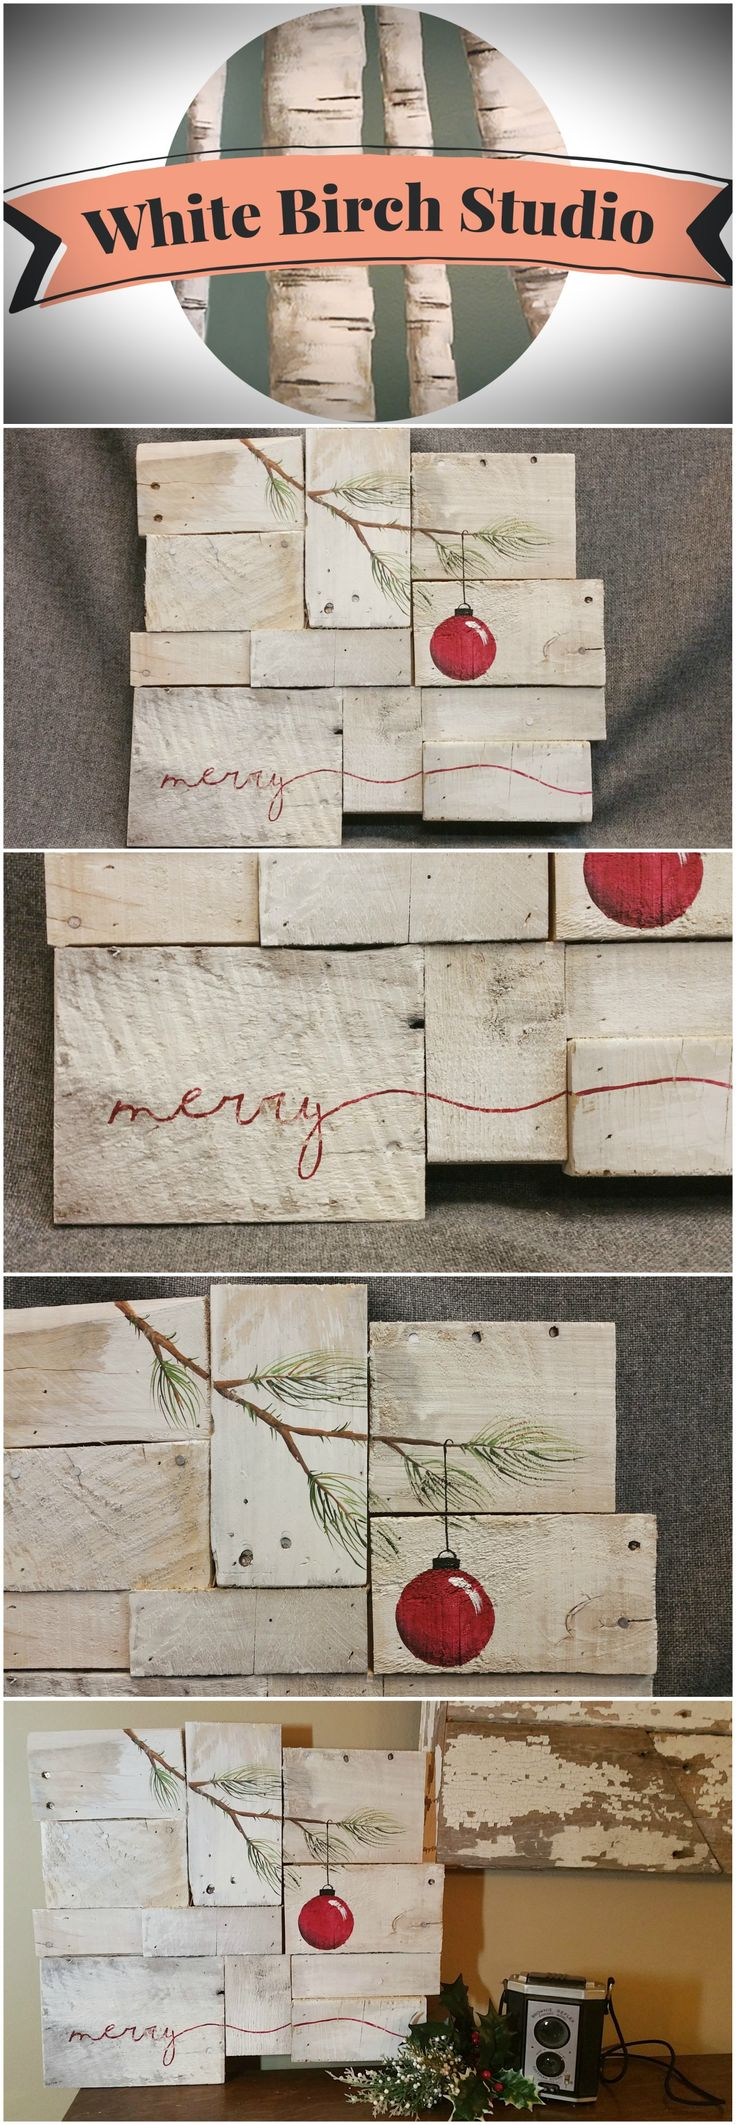 "Rustic Christmas decor, Pallet art, Farmhouse decor, One of a kind, merry, ORIGINAL, Christmas Hand painted, Shabbt chic, Distressed   This is the ORIGINAL, One of a kind for sale. Acrylic painting on reclaimed Pallet boards. This unique piece is appx. 16""wide x 14"" tall"